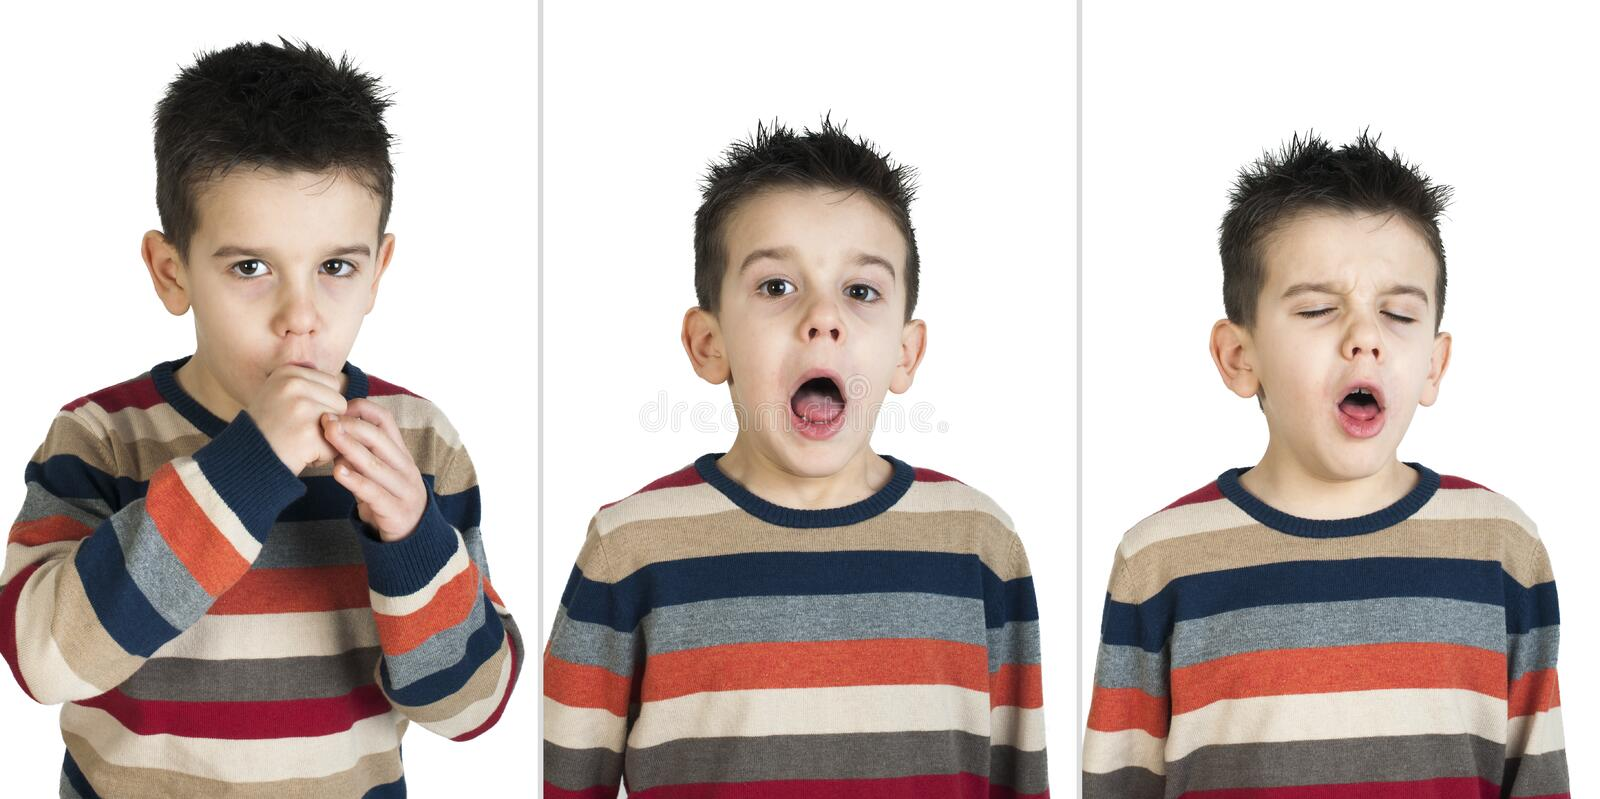 Children who cough stock image